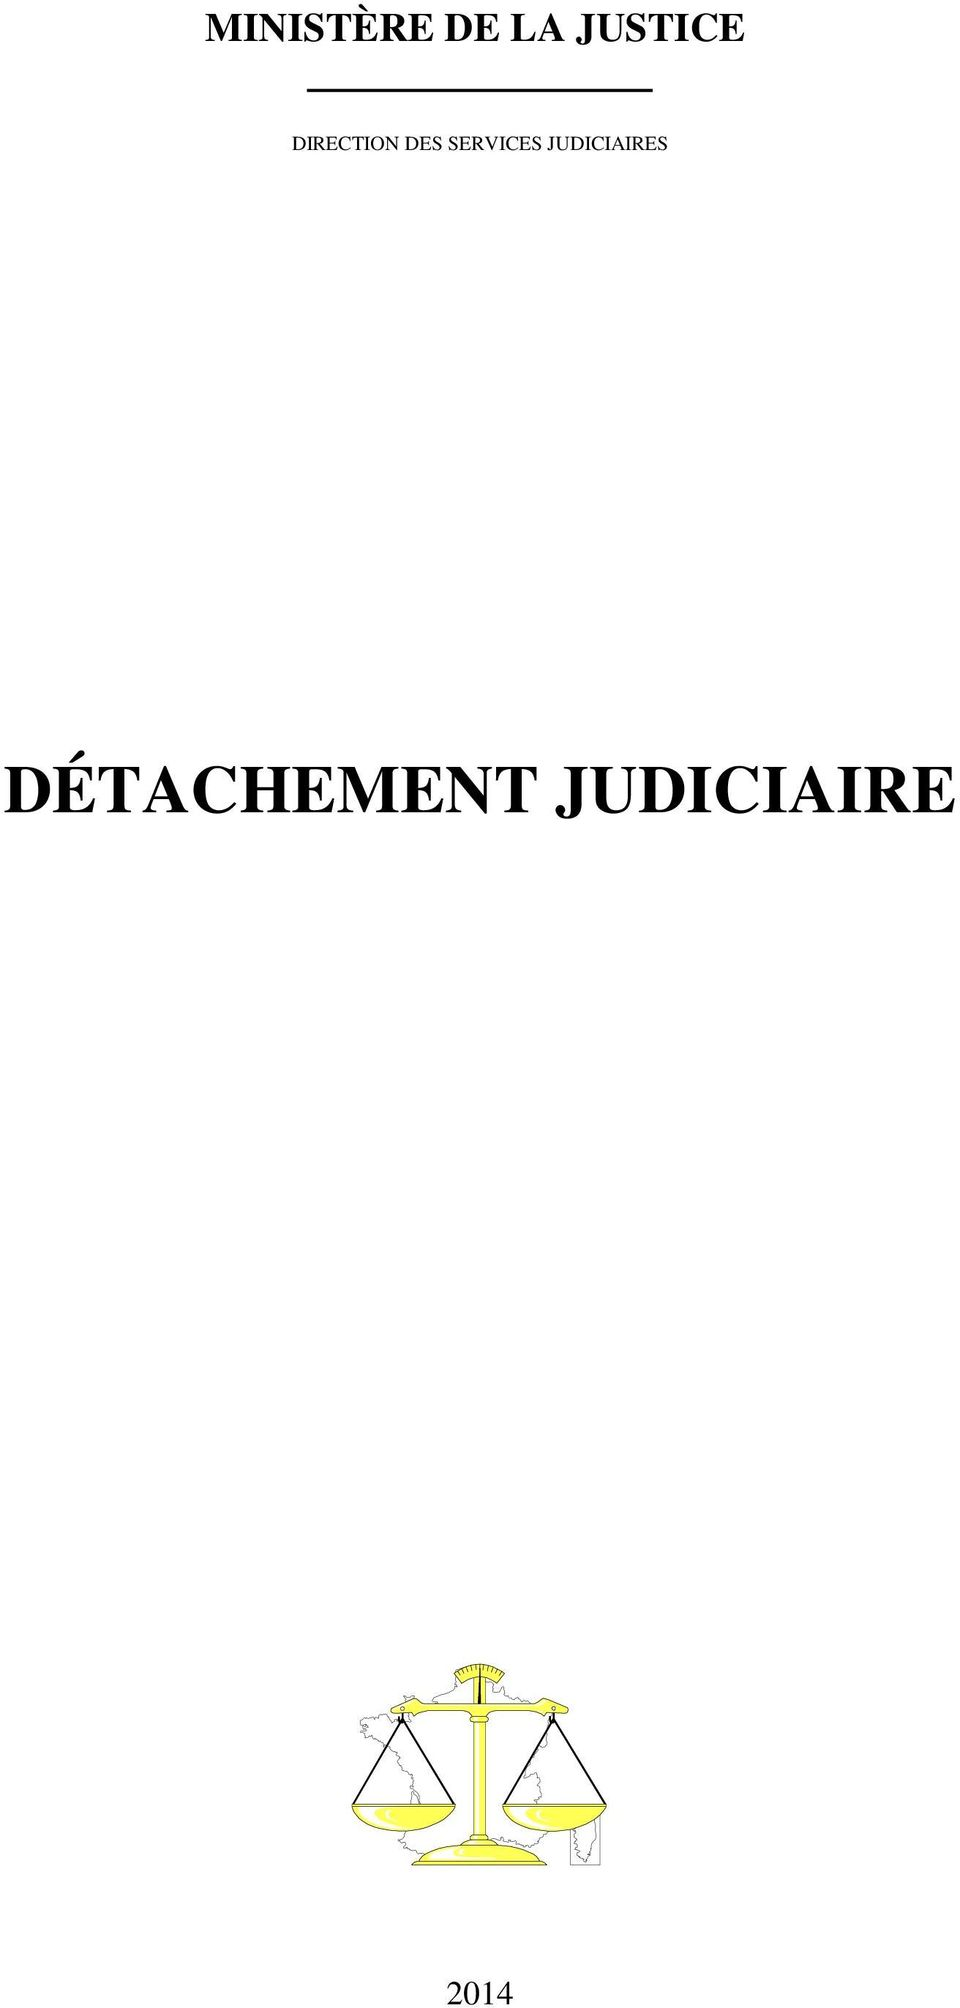 SERVICES JUDICIAIRES